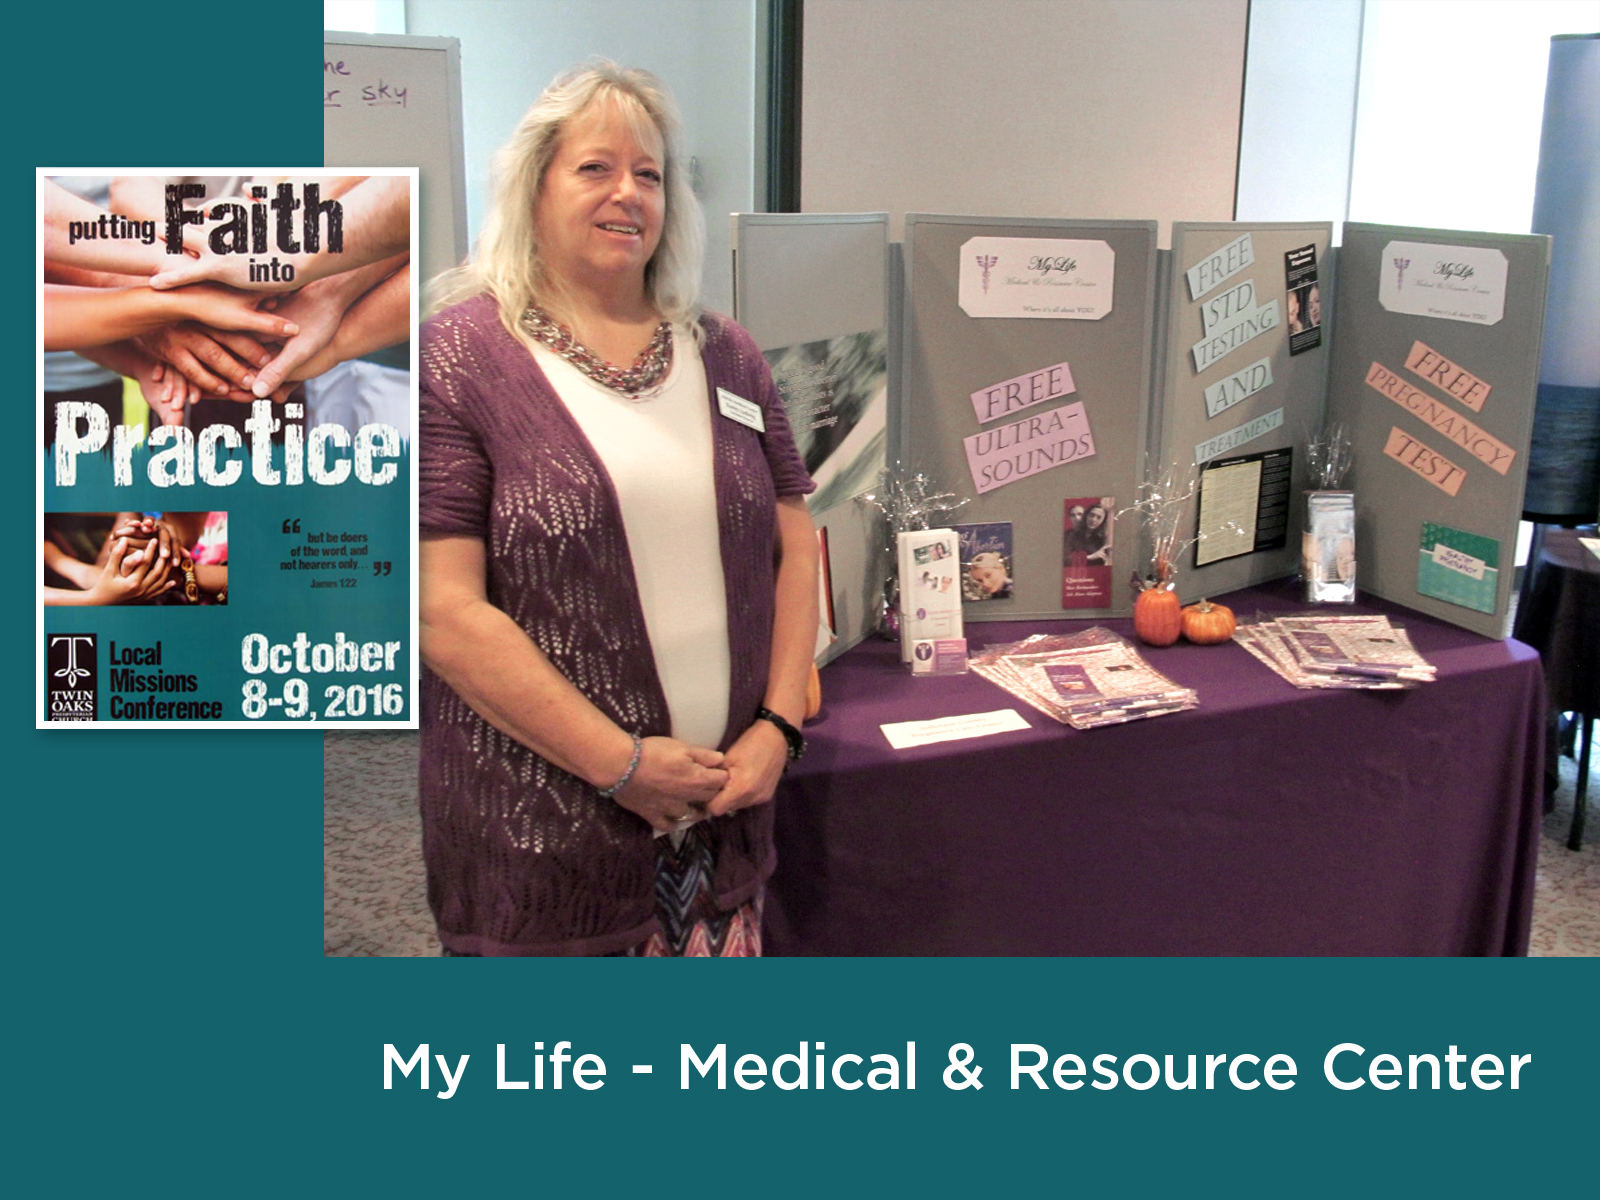 My Life - Medical & Resource Center 1.jpg